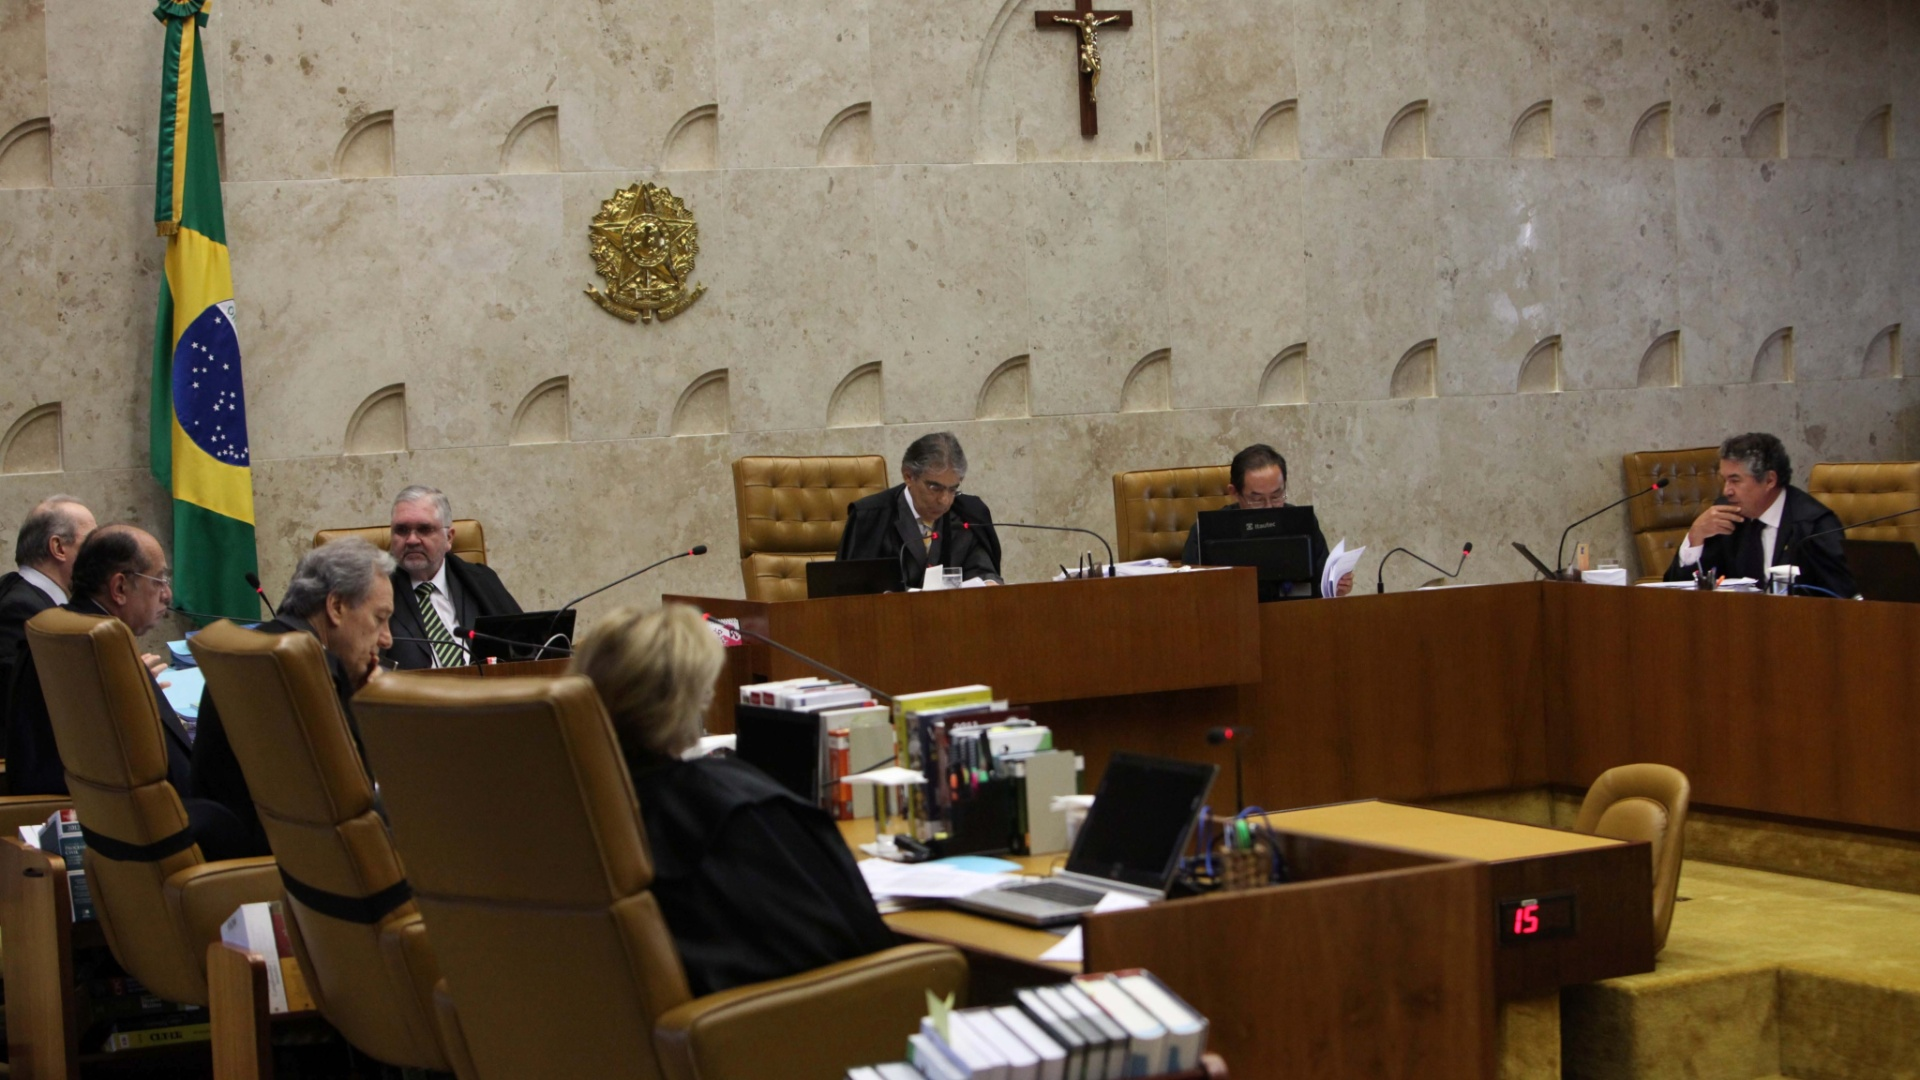 8.nov.2012 - Os ministros do STF (Supremo Tribunal Federal) condenaram o publicitrio Cristiano Paz,  ex-scio de Marcos Valrio, a 25 anos, onze meses e 20 dias de priso pelos crimes de formao de quadrilha, corrupo ativa, peculato e lavagem de dinheiro na sesso desta quinta-feira (8). Alm disso, o condenado ter de pagar uma multa de aproximadamente R$ 2,6 milhes